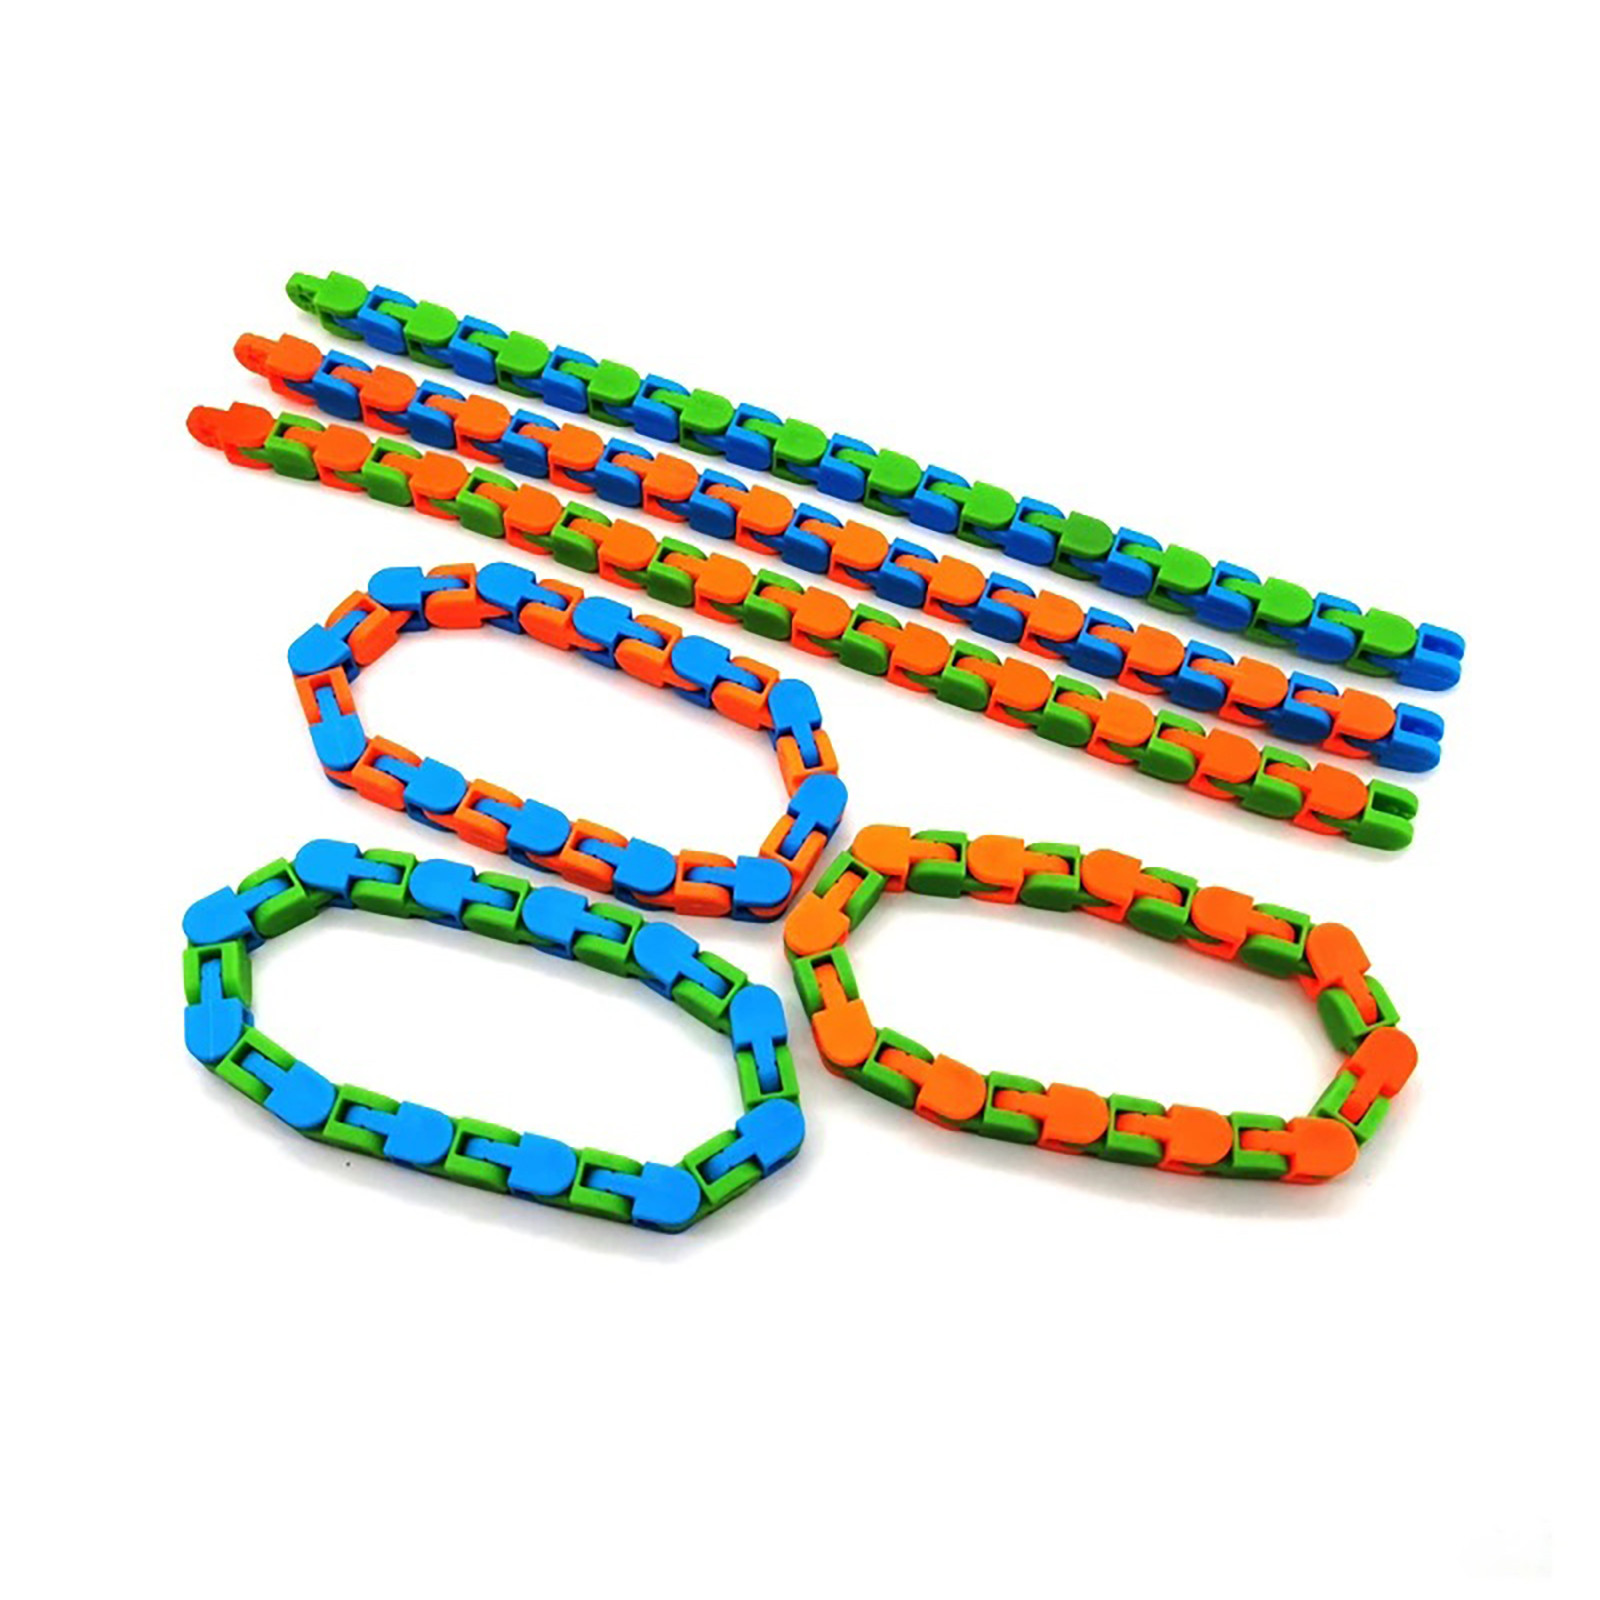 Toys Puzzle Tracks Snap Stress Shape Click Wacky Sensory Colorful Kids And Relief-Rotate img2